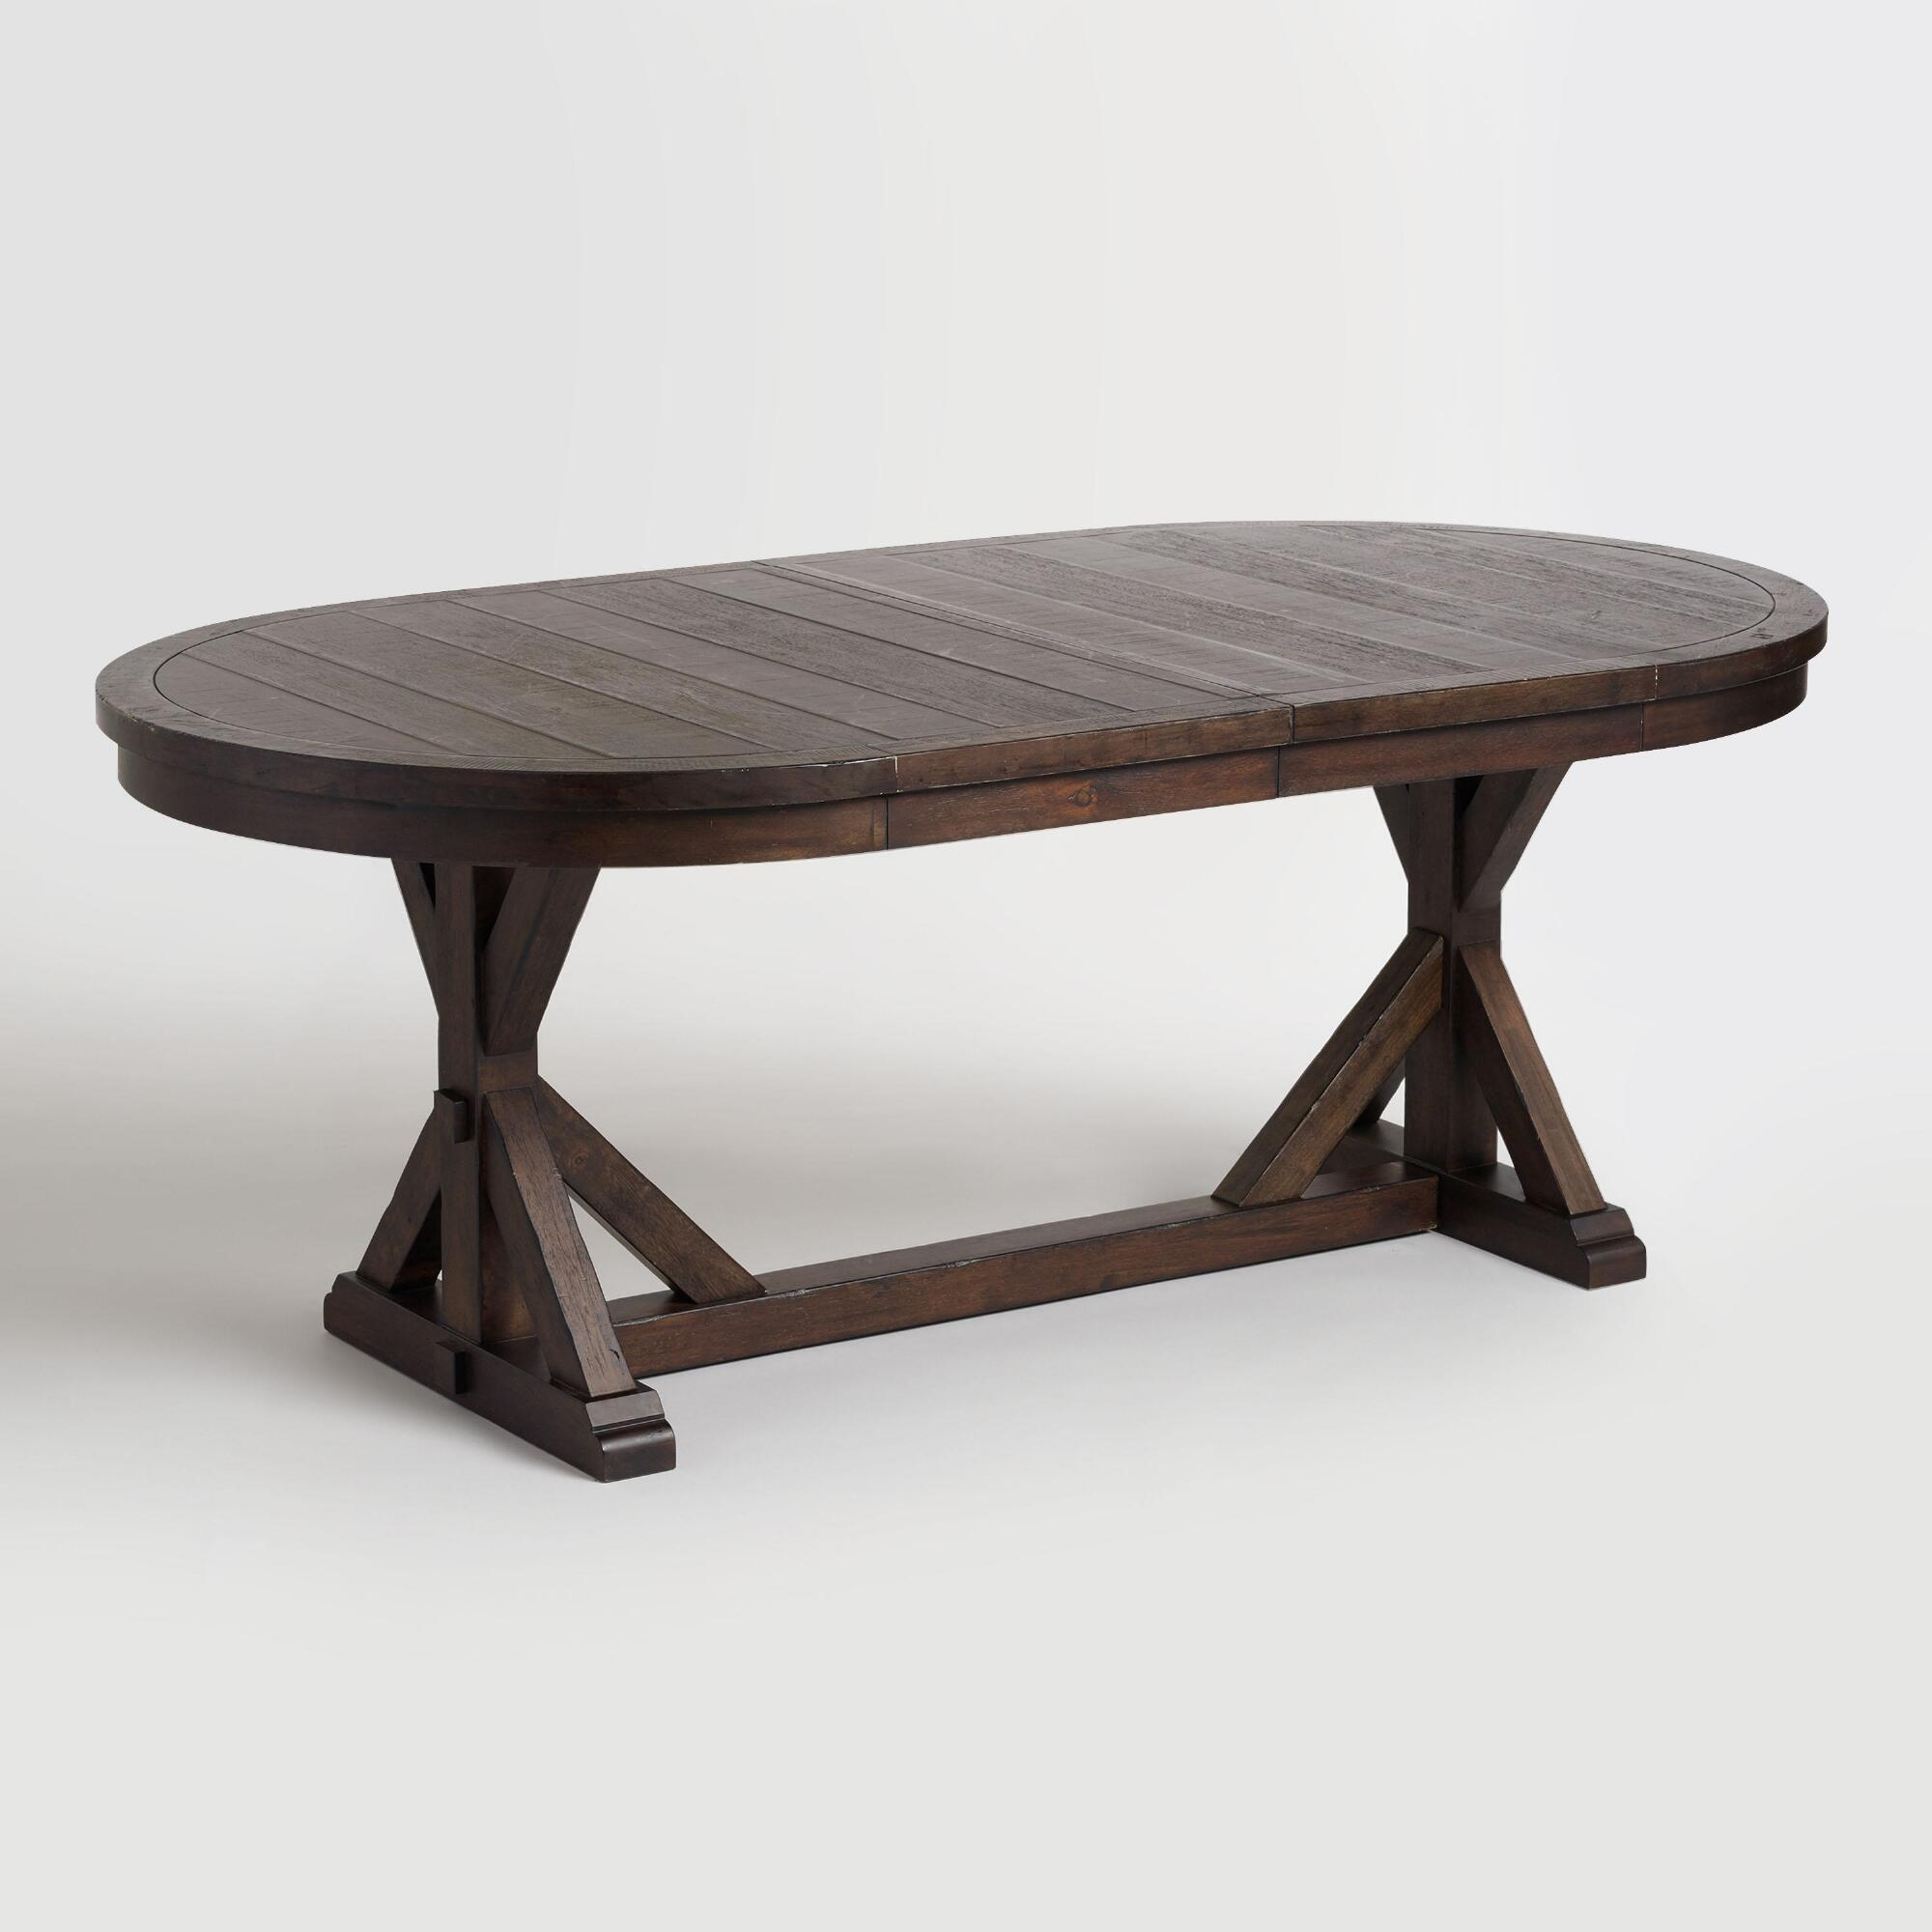 Rustic Wooden Dining Tables ~ Rustic brown oval wood brooklynn extension dining table